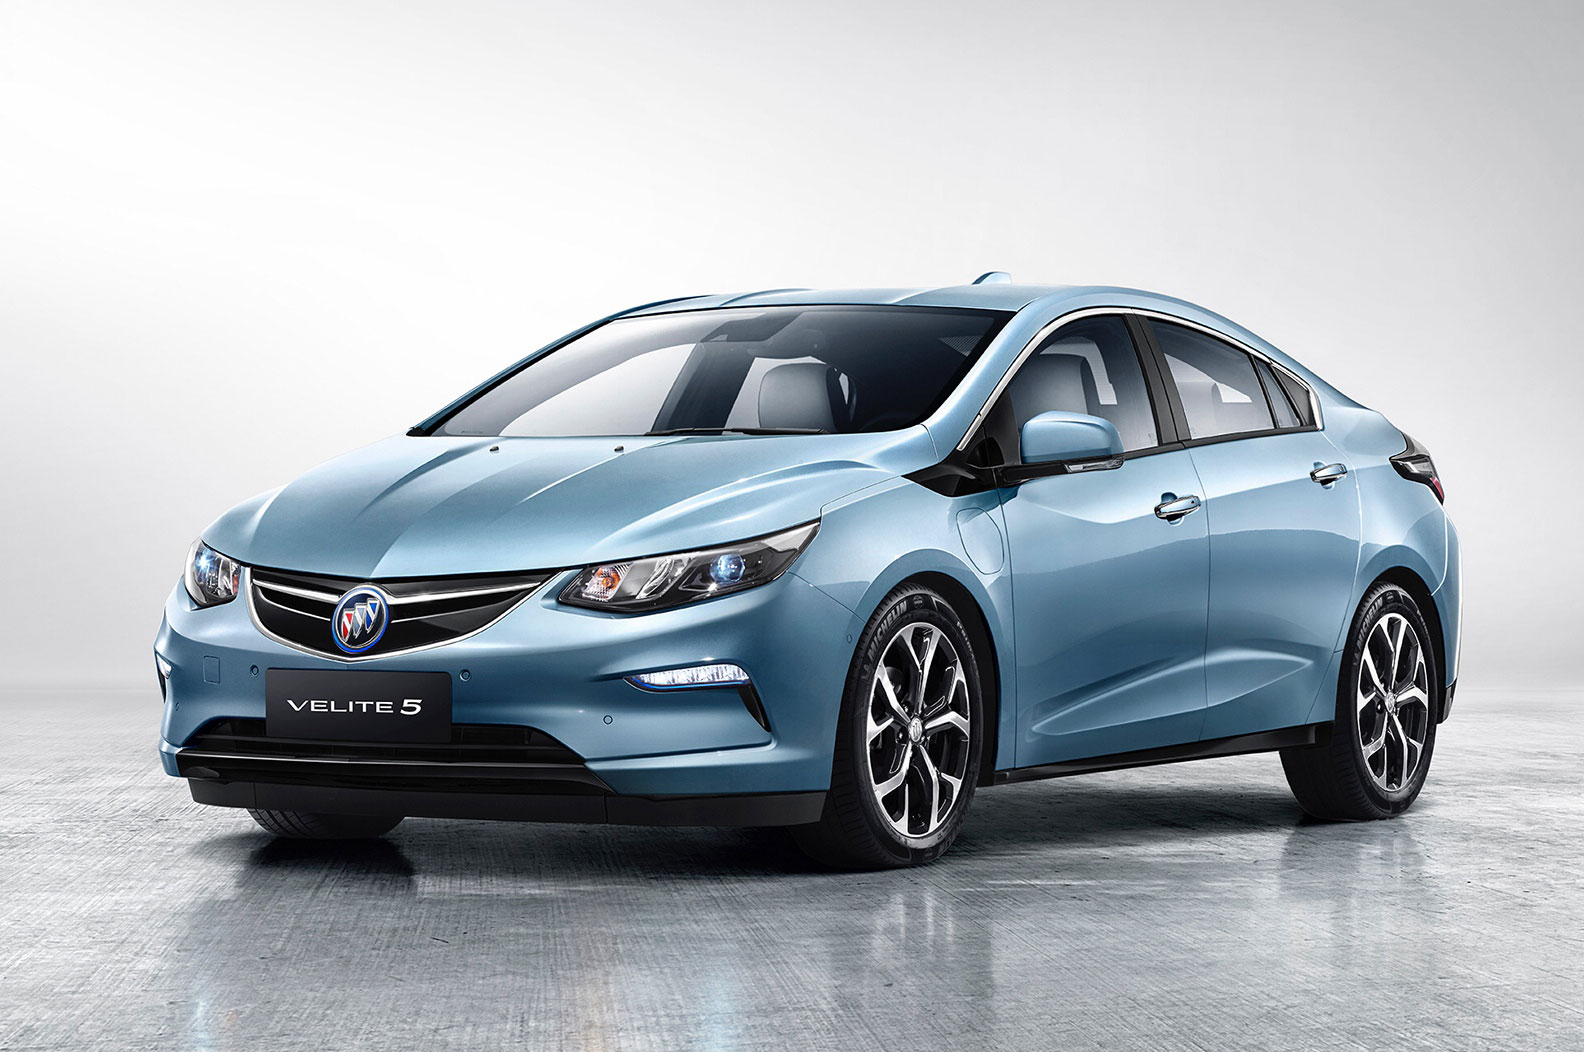 Velite 5 Debuts in China as Buick's First Extended-Range ...